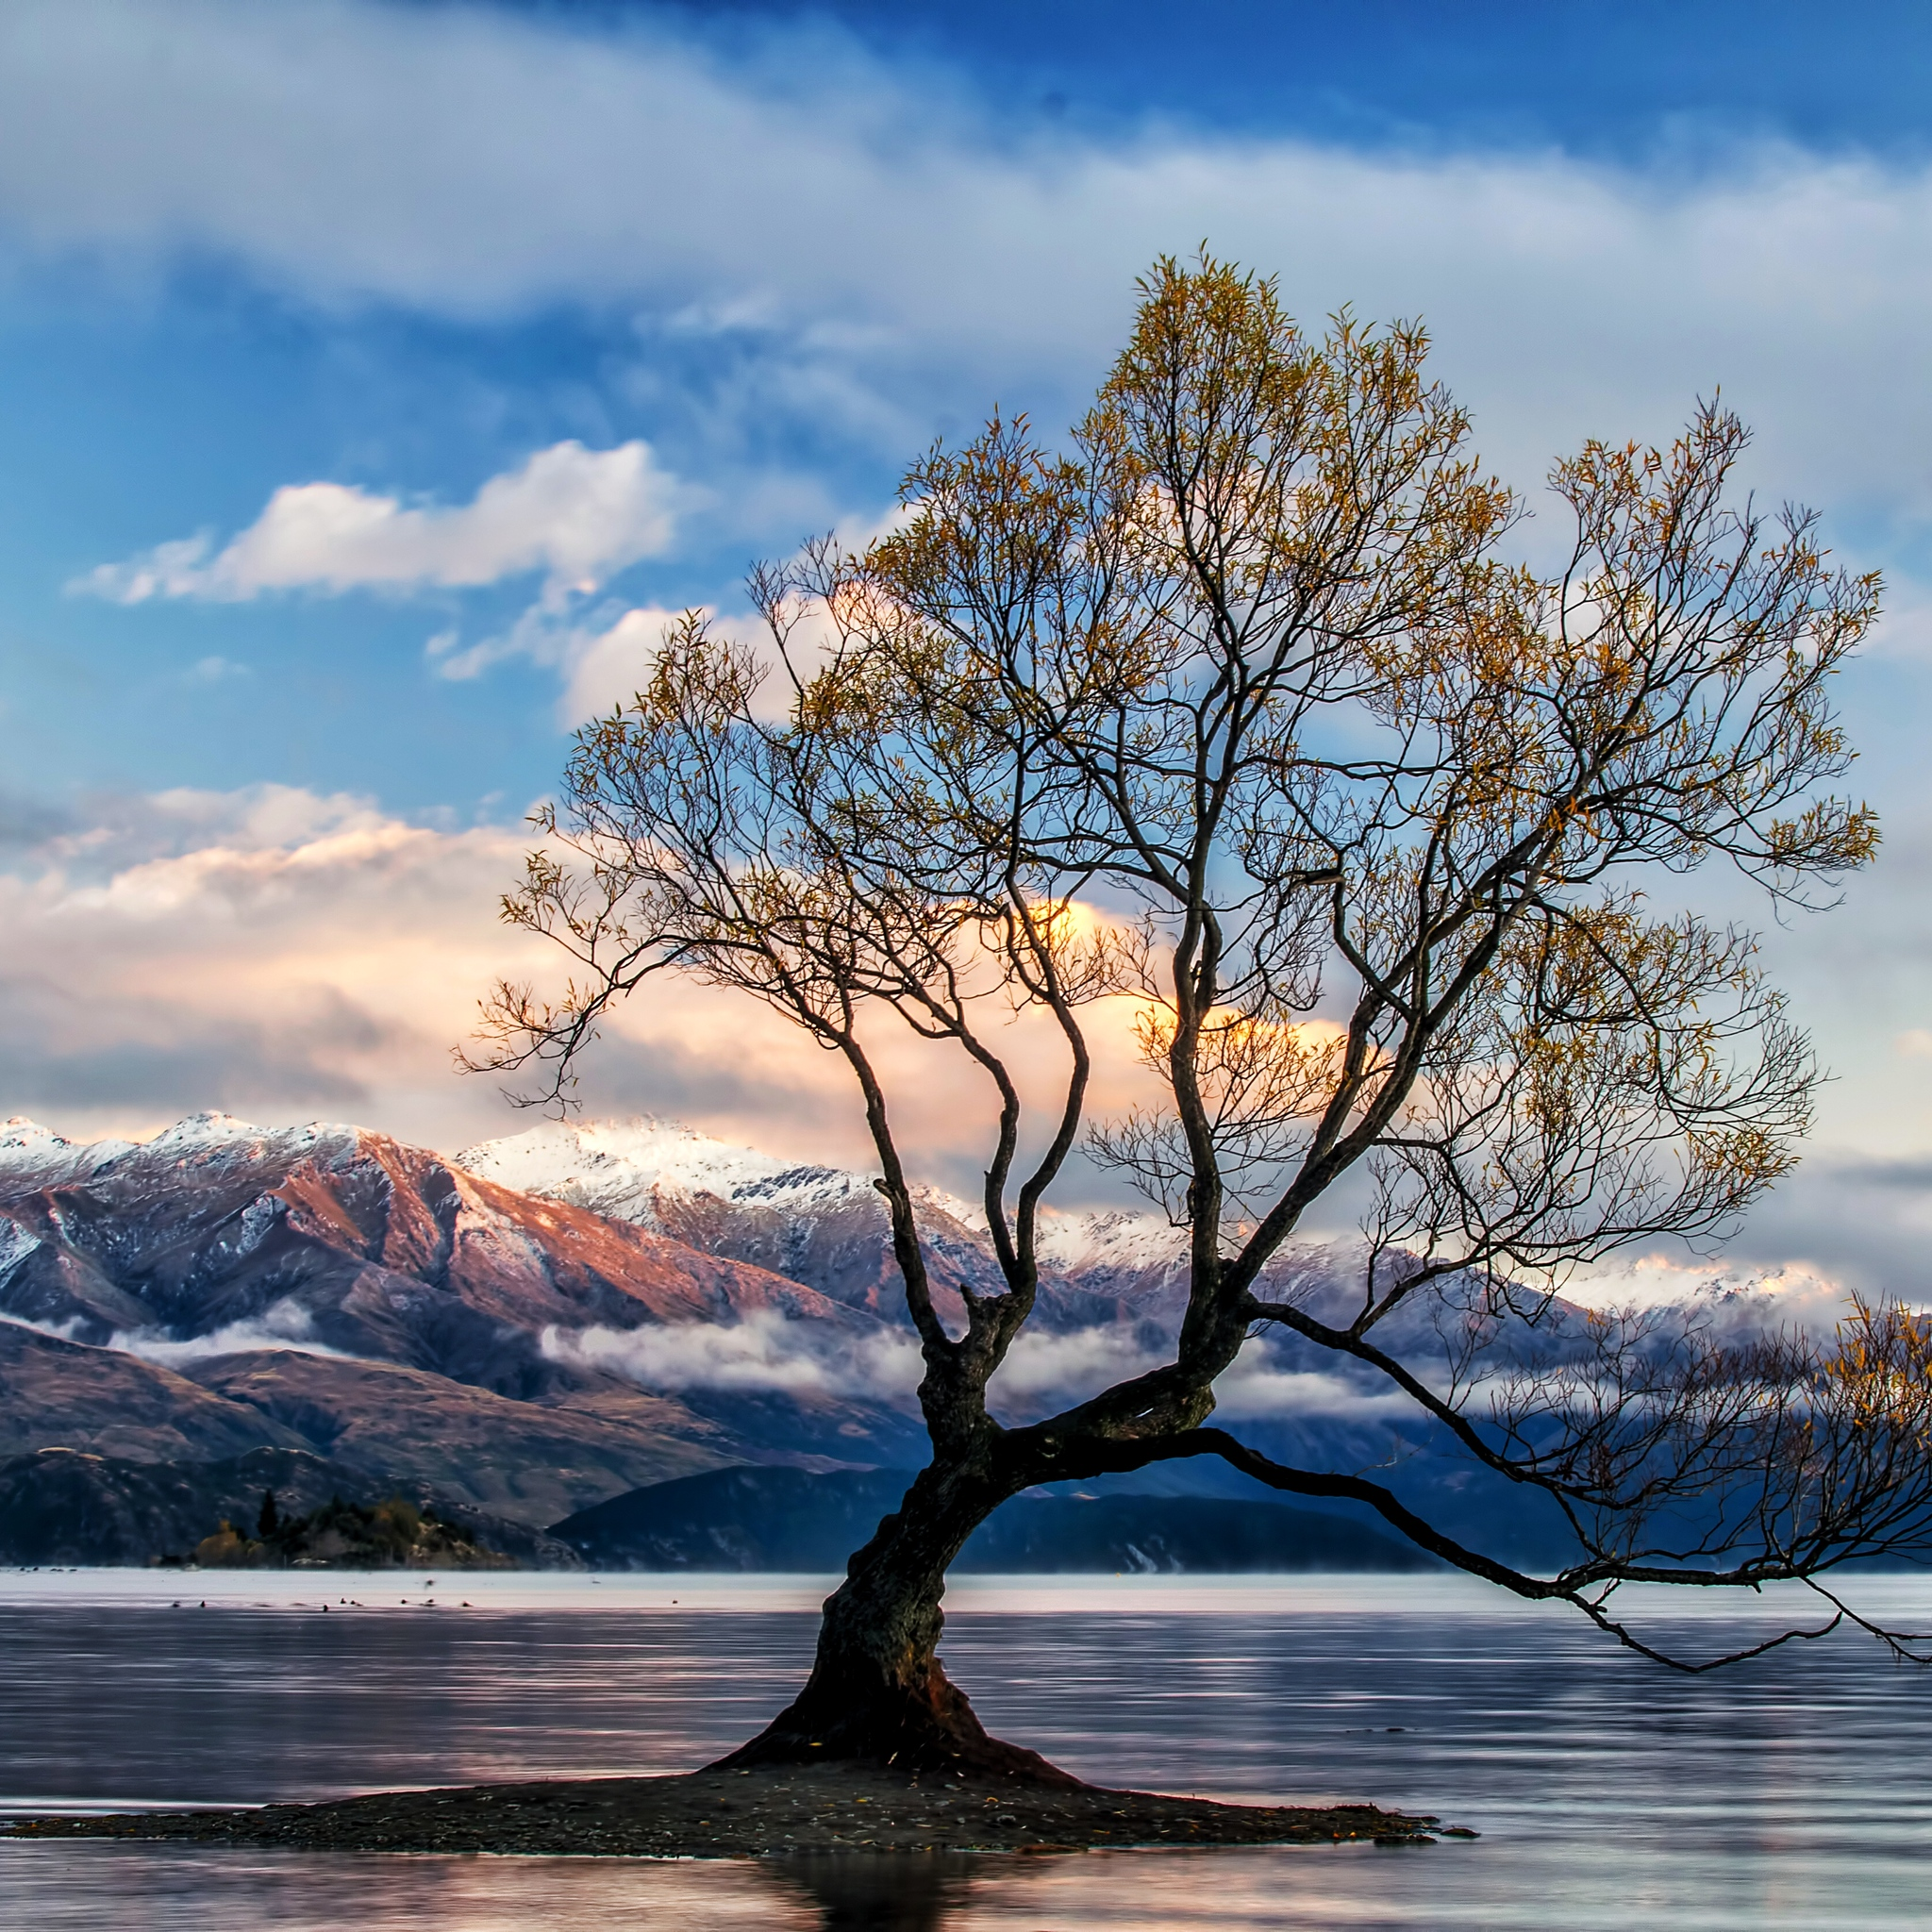 Computer Wallpaper Nz: 2048x2048 Lone Tree Lake Wanaka Ipad Air HD 4k Wallpapers